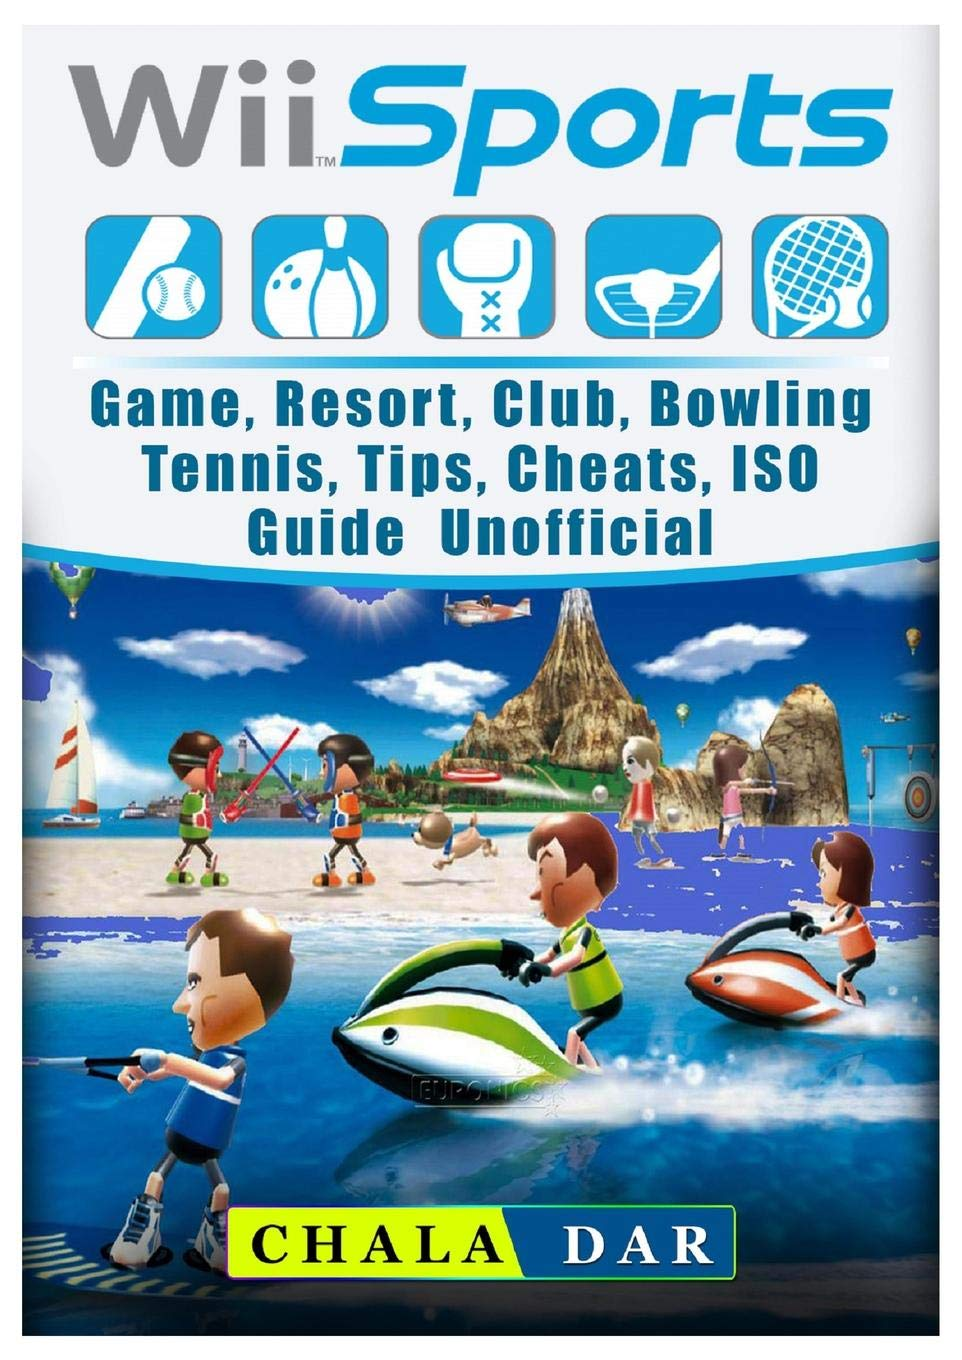 Wii Sports Game, Resort, Club, Bowling, Tennis, Tips, Cheats, Iso, Guide  Unofficial: Chala Dar: 9781985760745: Amazon.com: Books